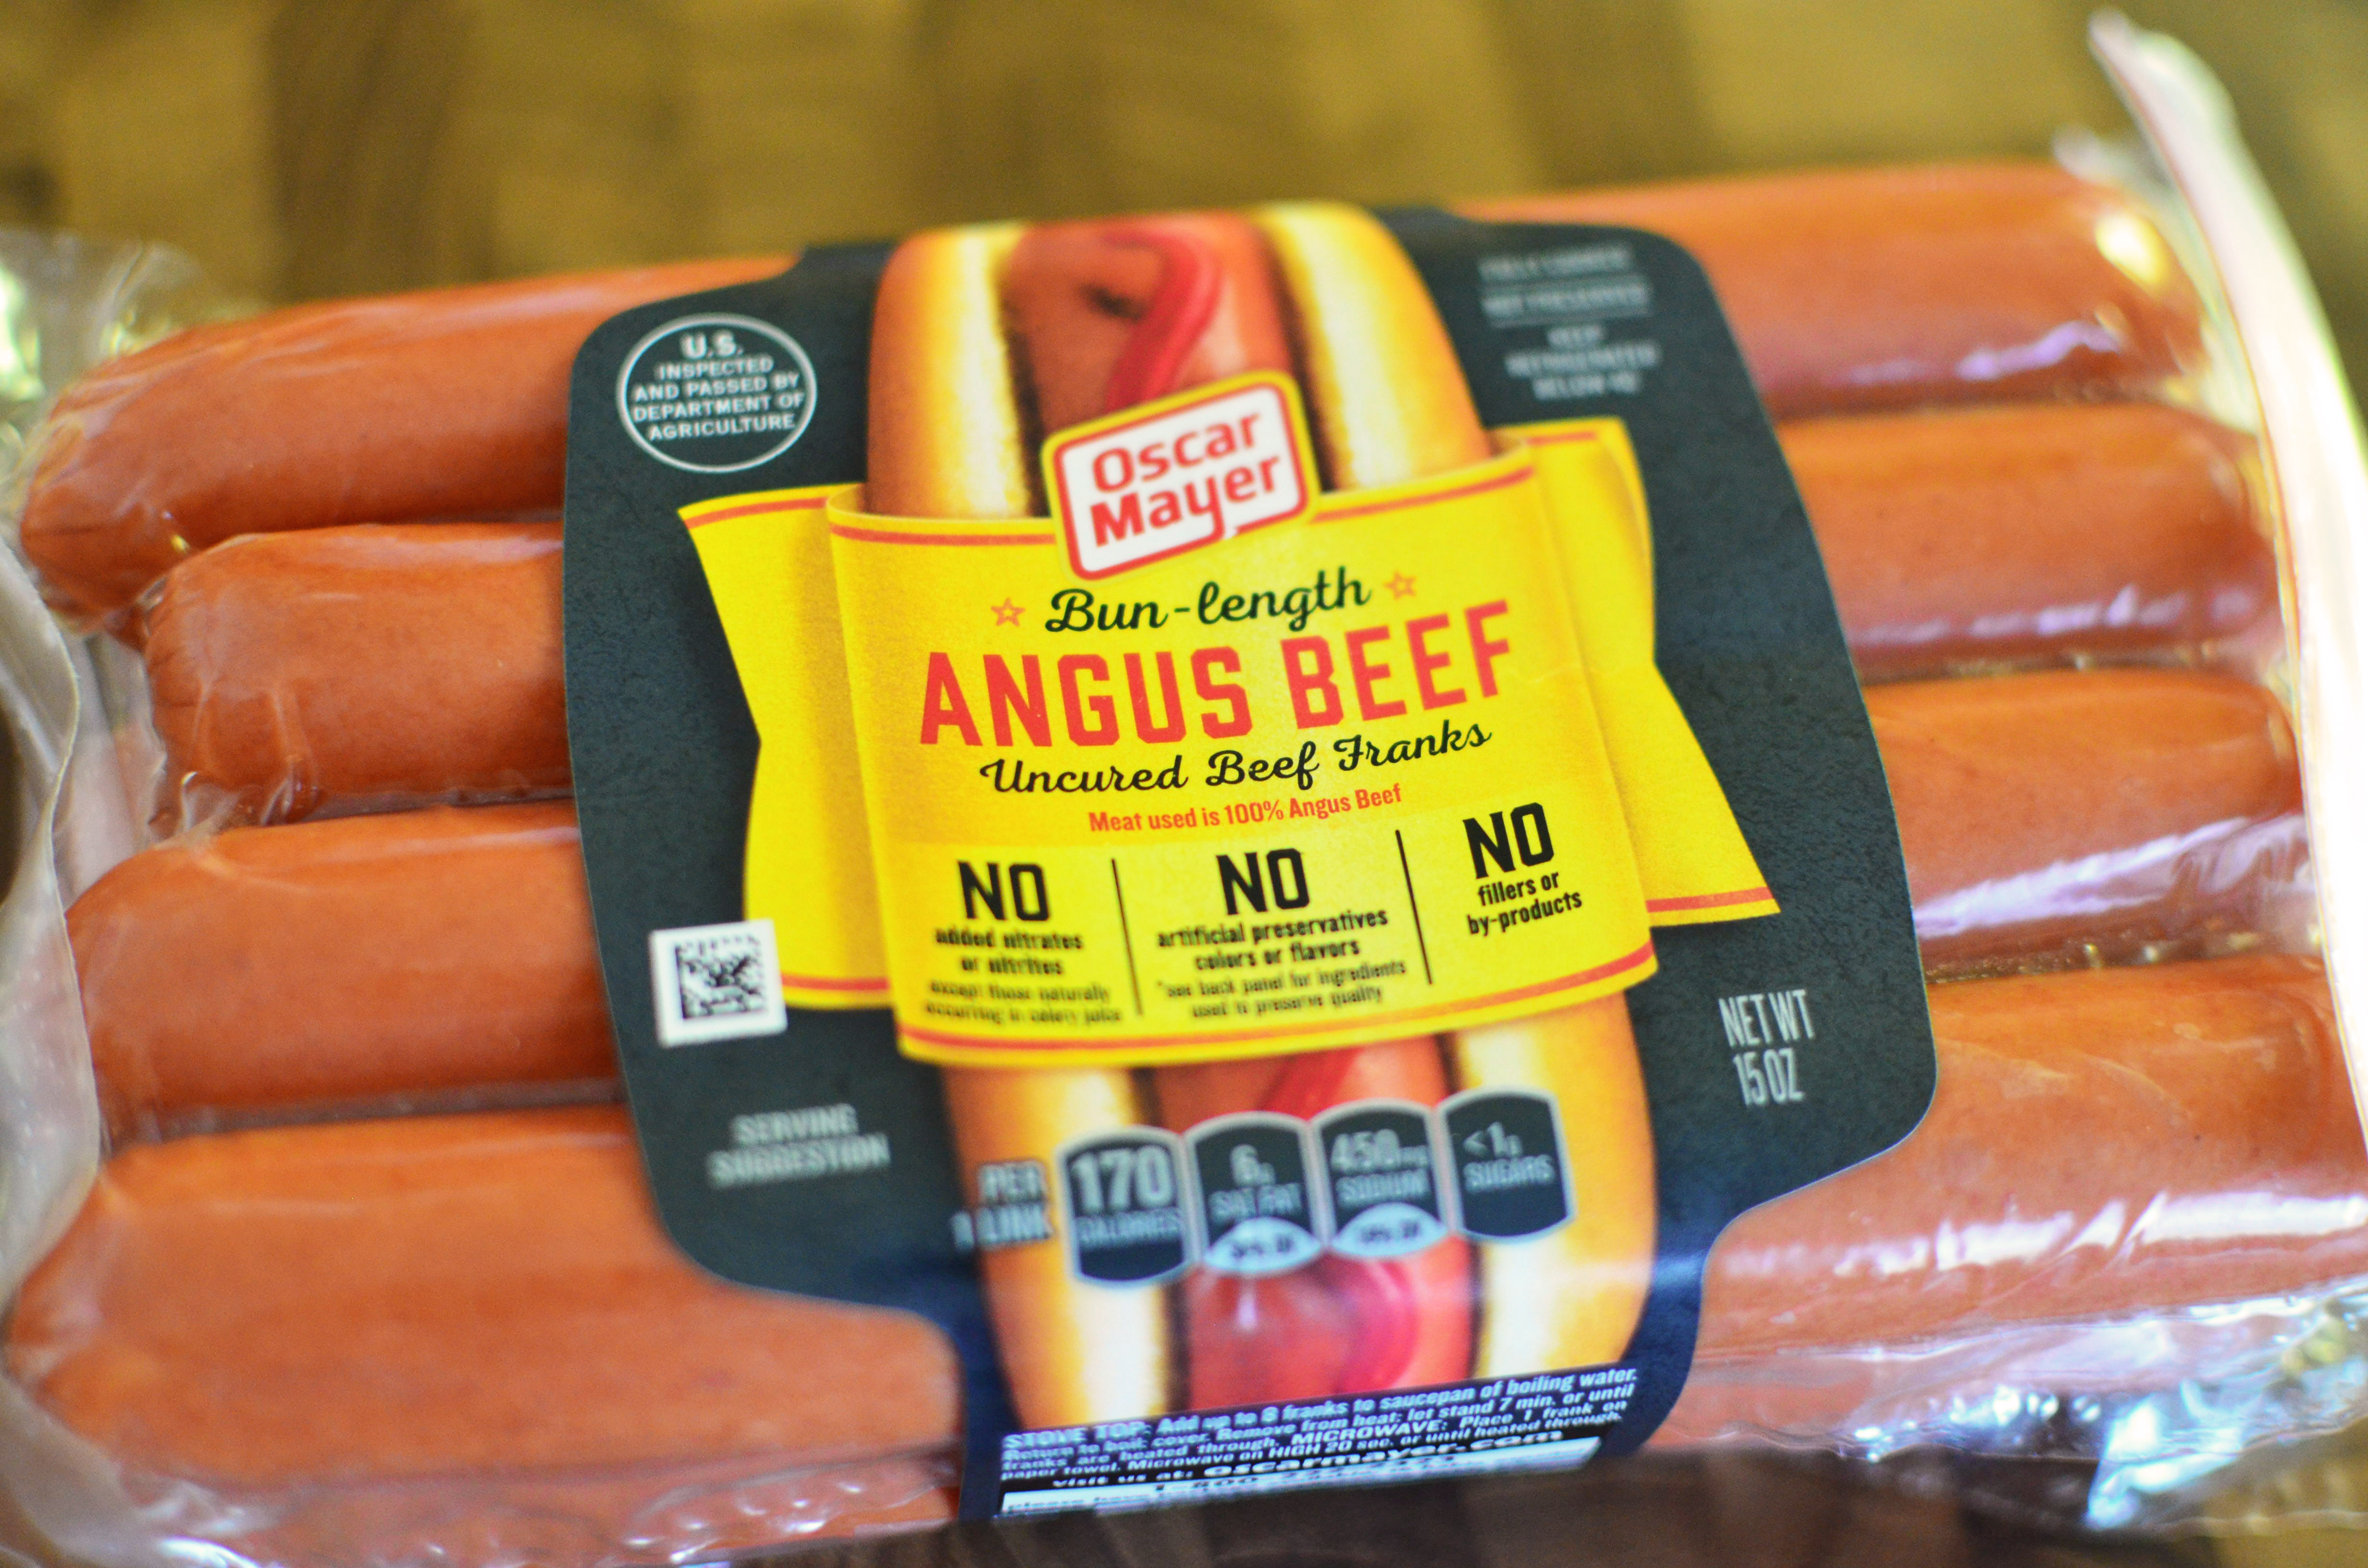 Prod20092754 as well Oscar Mayer Selects Hardwood Sm 4857 in addition Kraft Heinz Rev s Oscar Mayer Hot Dogs In Us id136528 in addition 14712178 besides The Worst Foods To Buy At The Grocery Store According To Nutritionists. on oscar mayer no nitrates